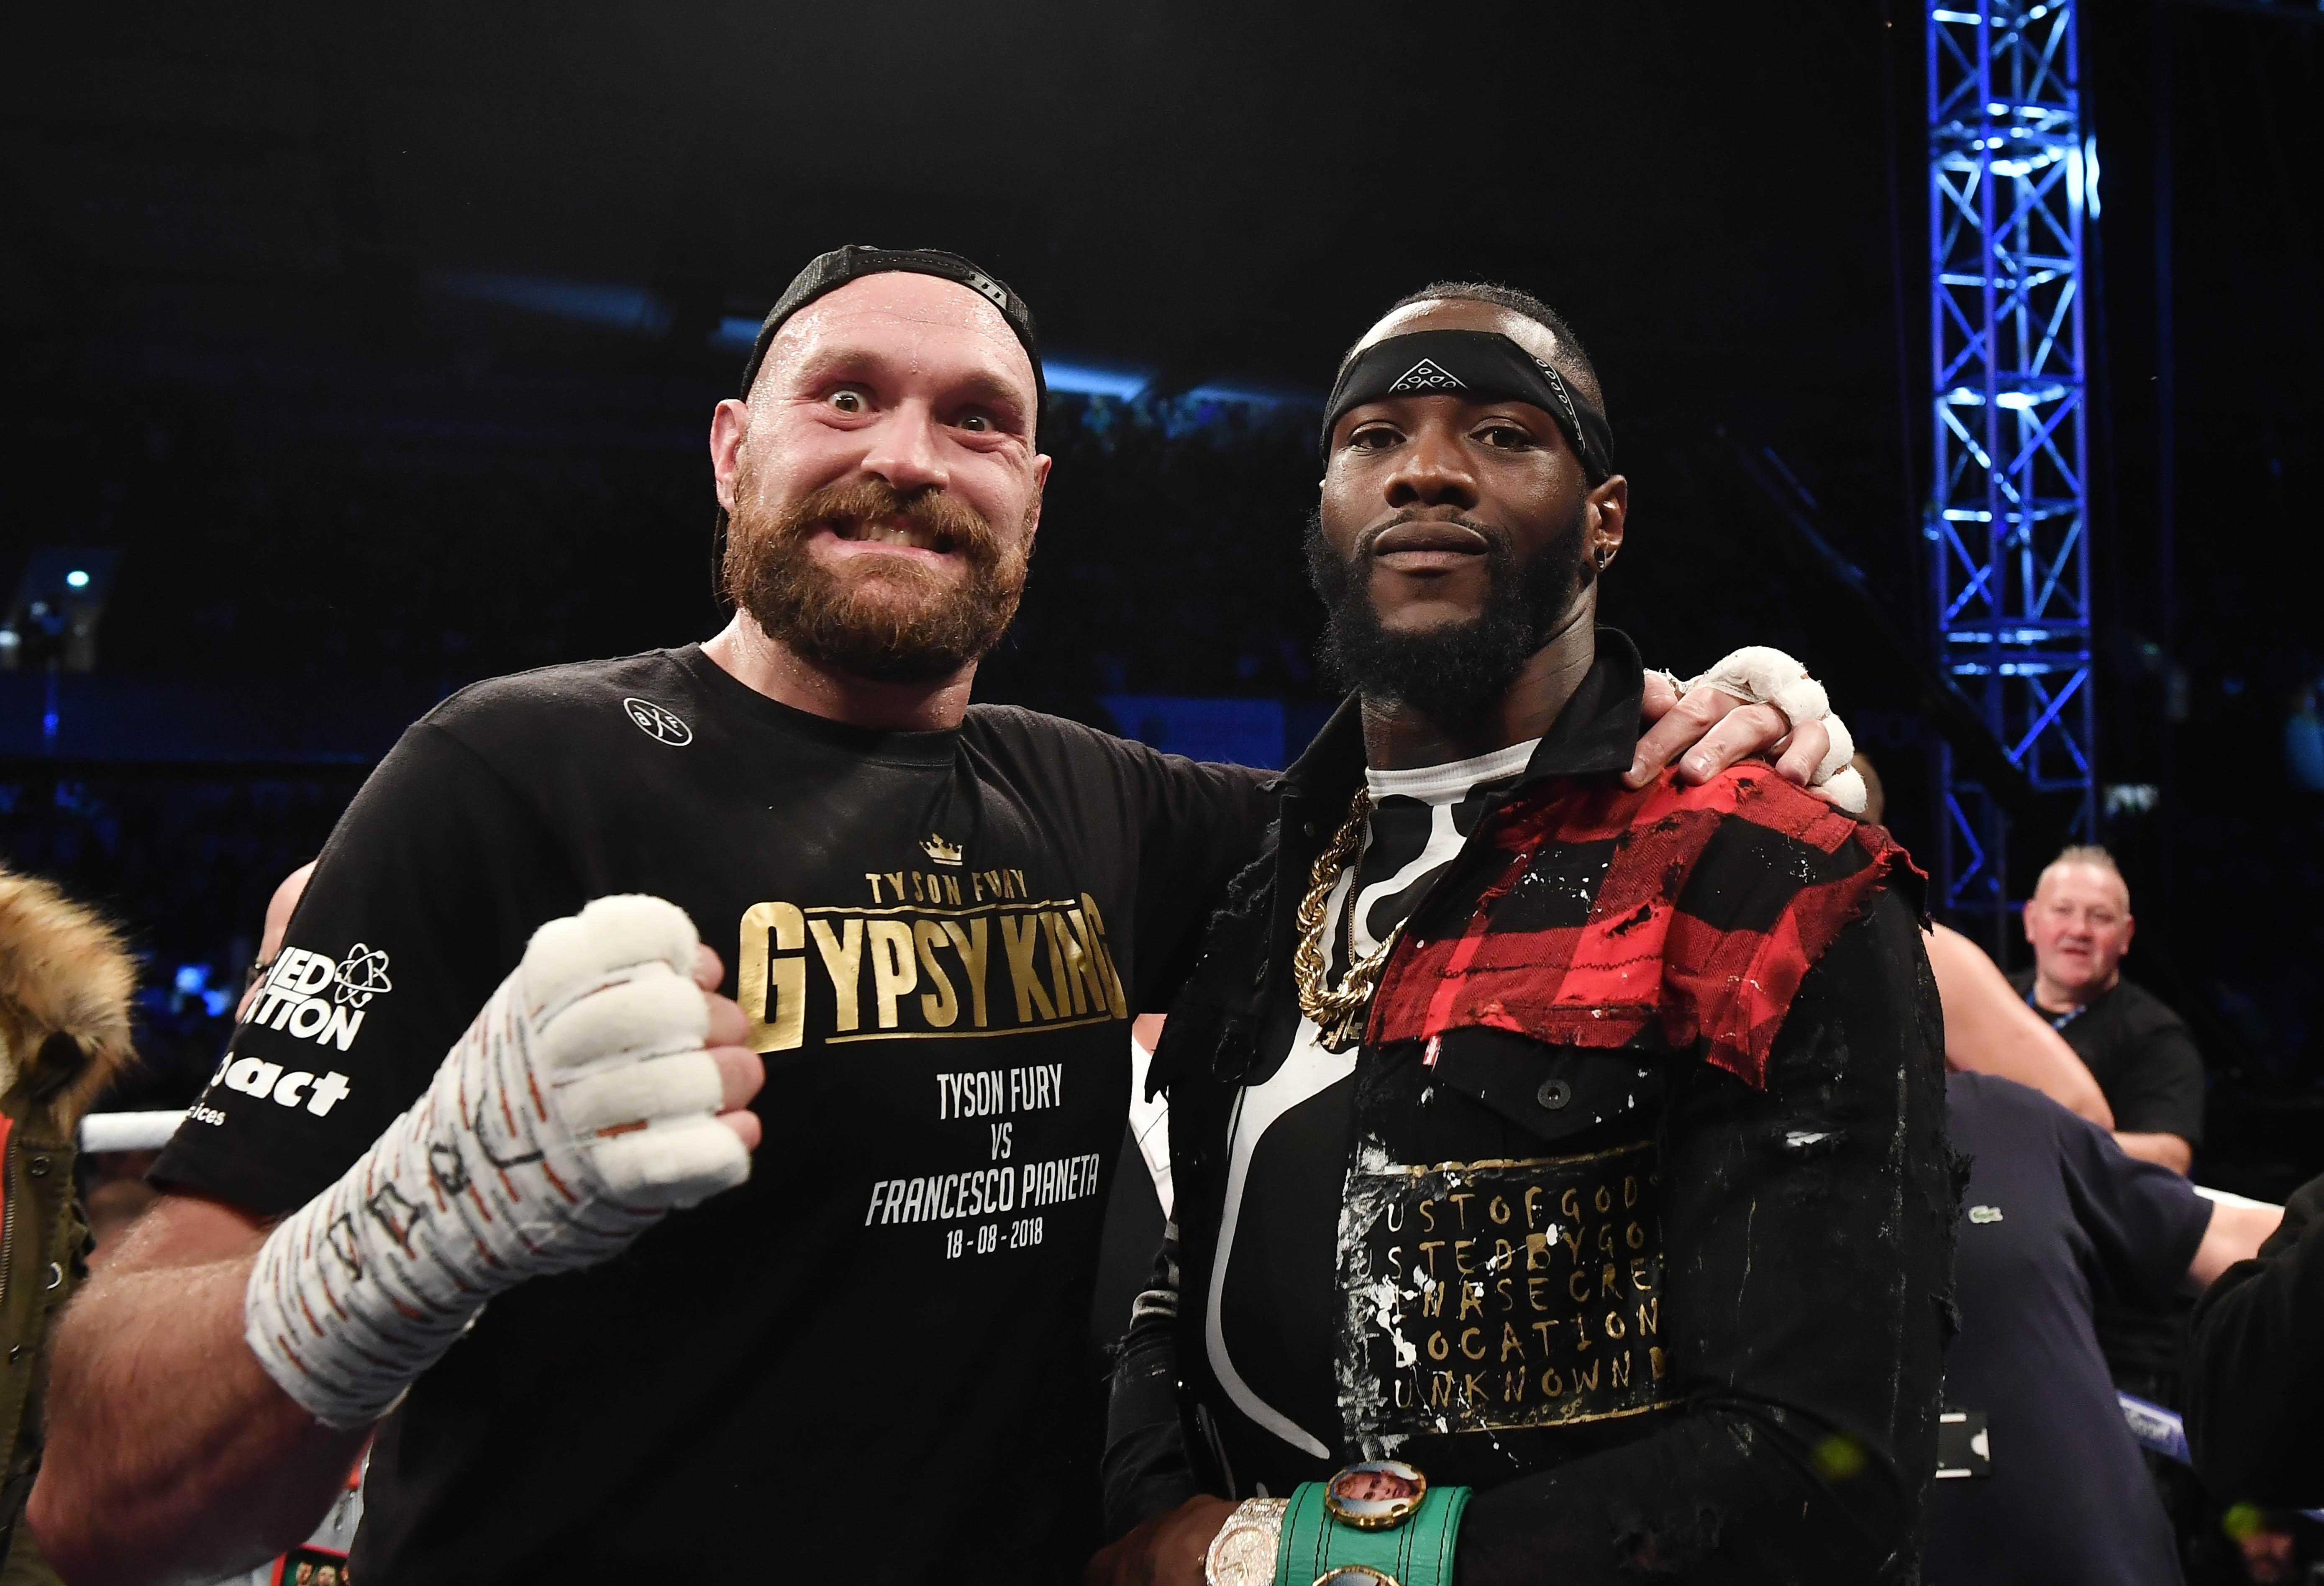 Tyson Fury vs Deontay Wilder is likely to be the next blockbuster fight this year - and AJ will be looking on with an eager eye to see how they get on